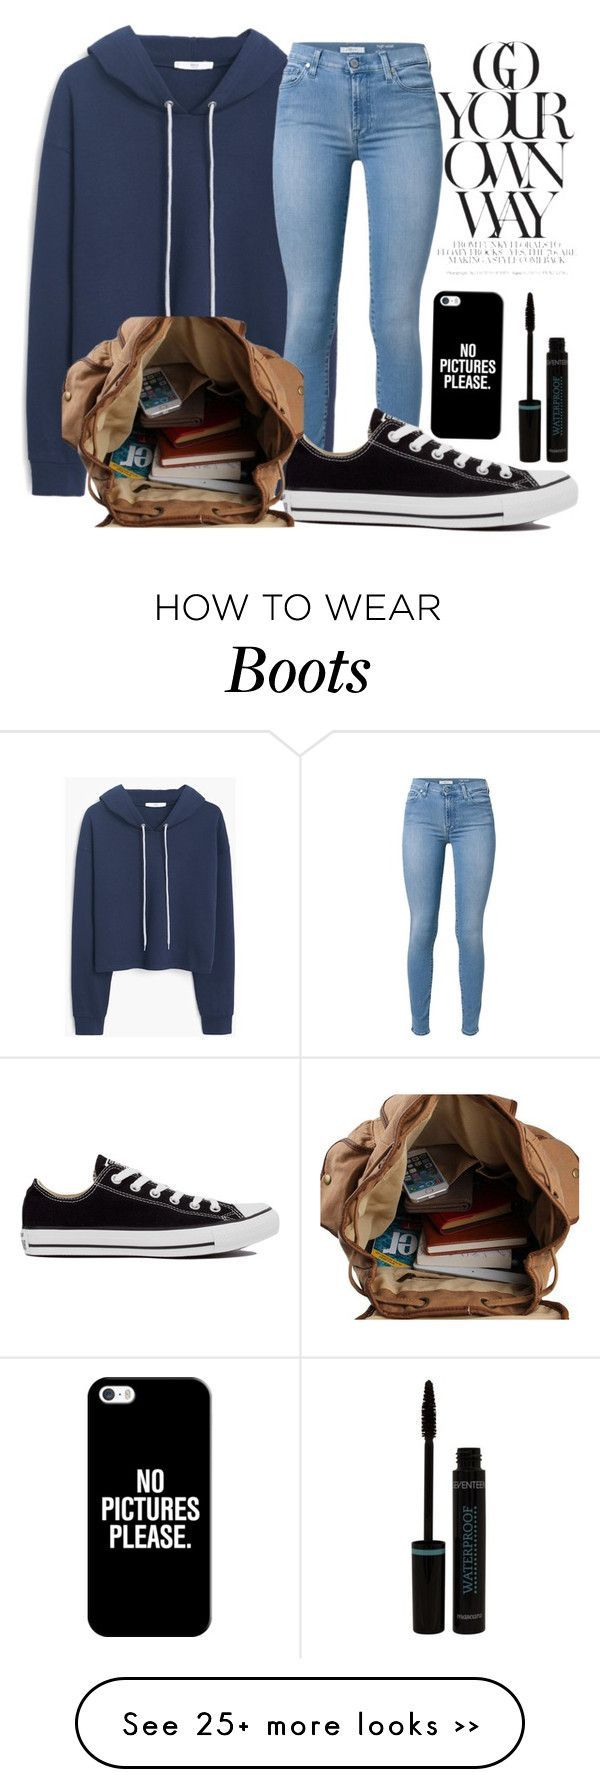 How to Wear Boots Sets